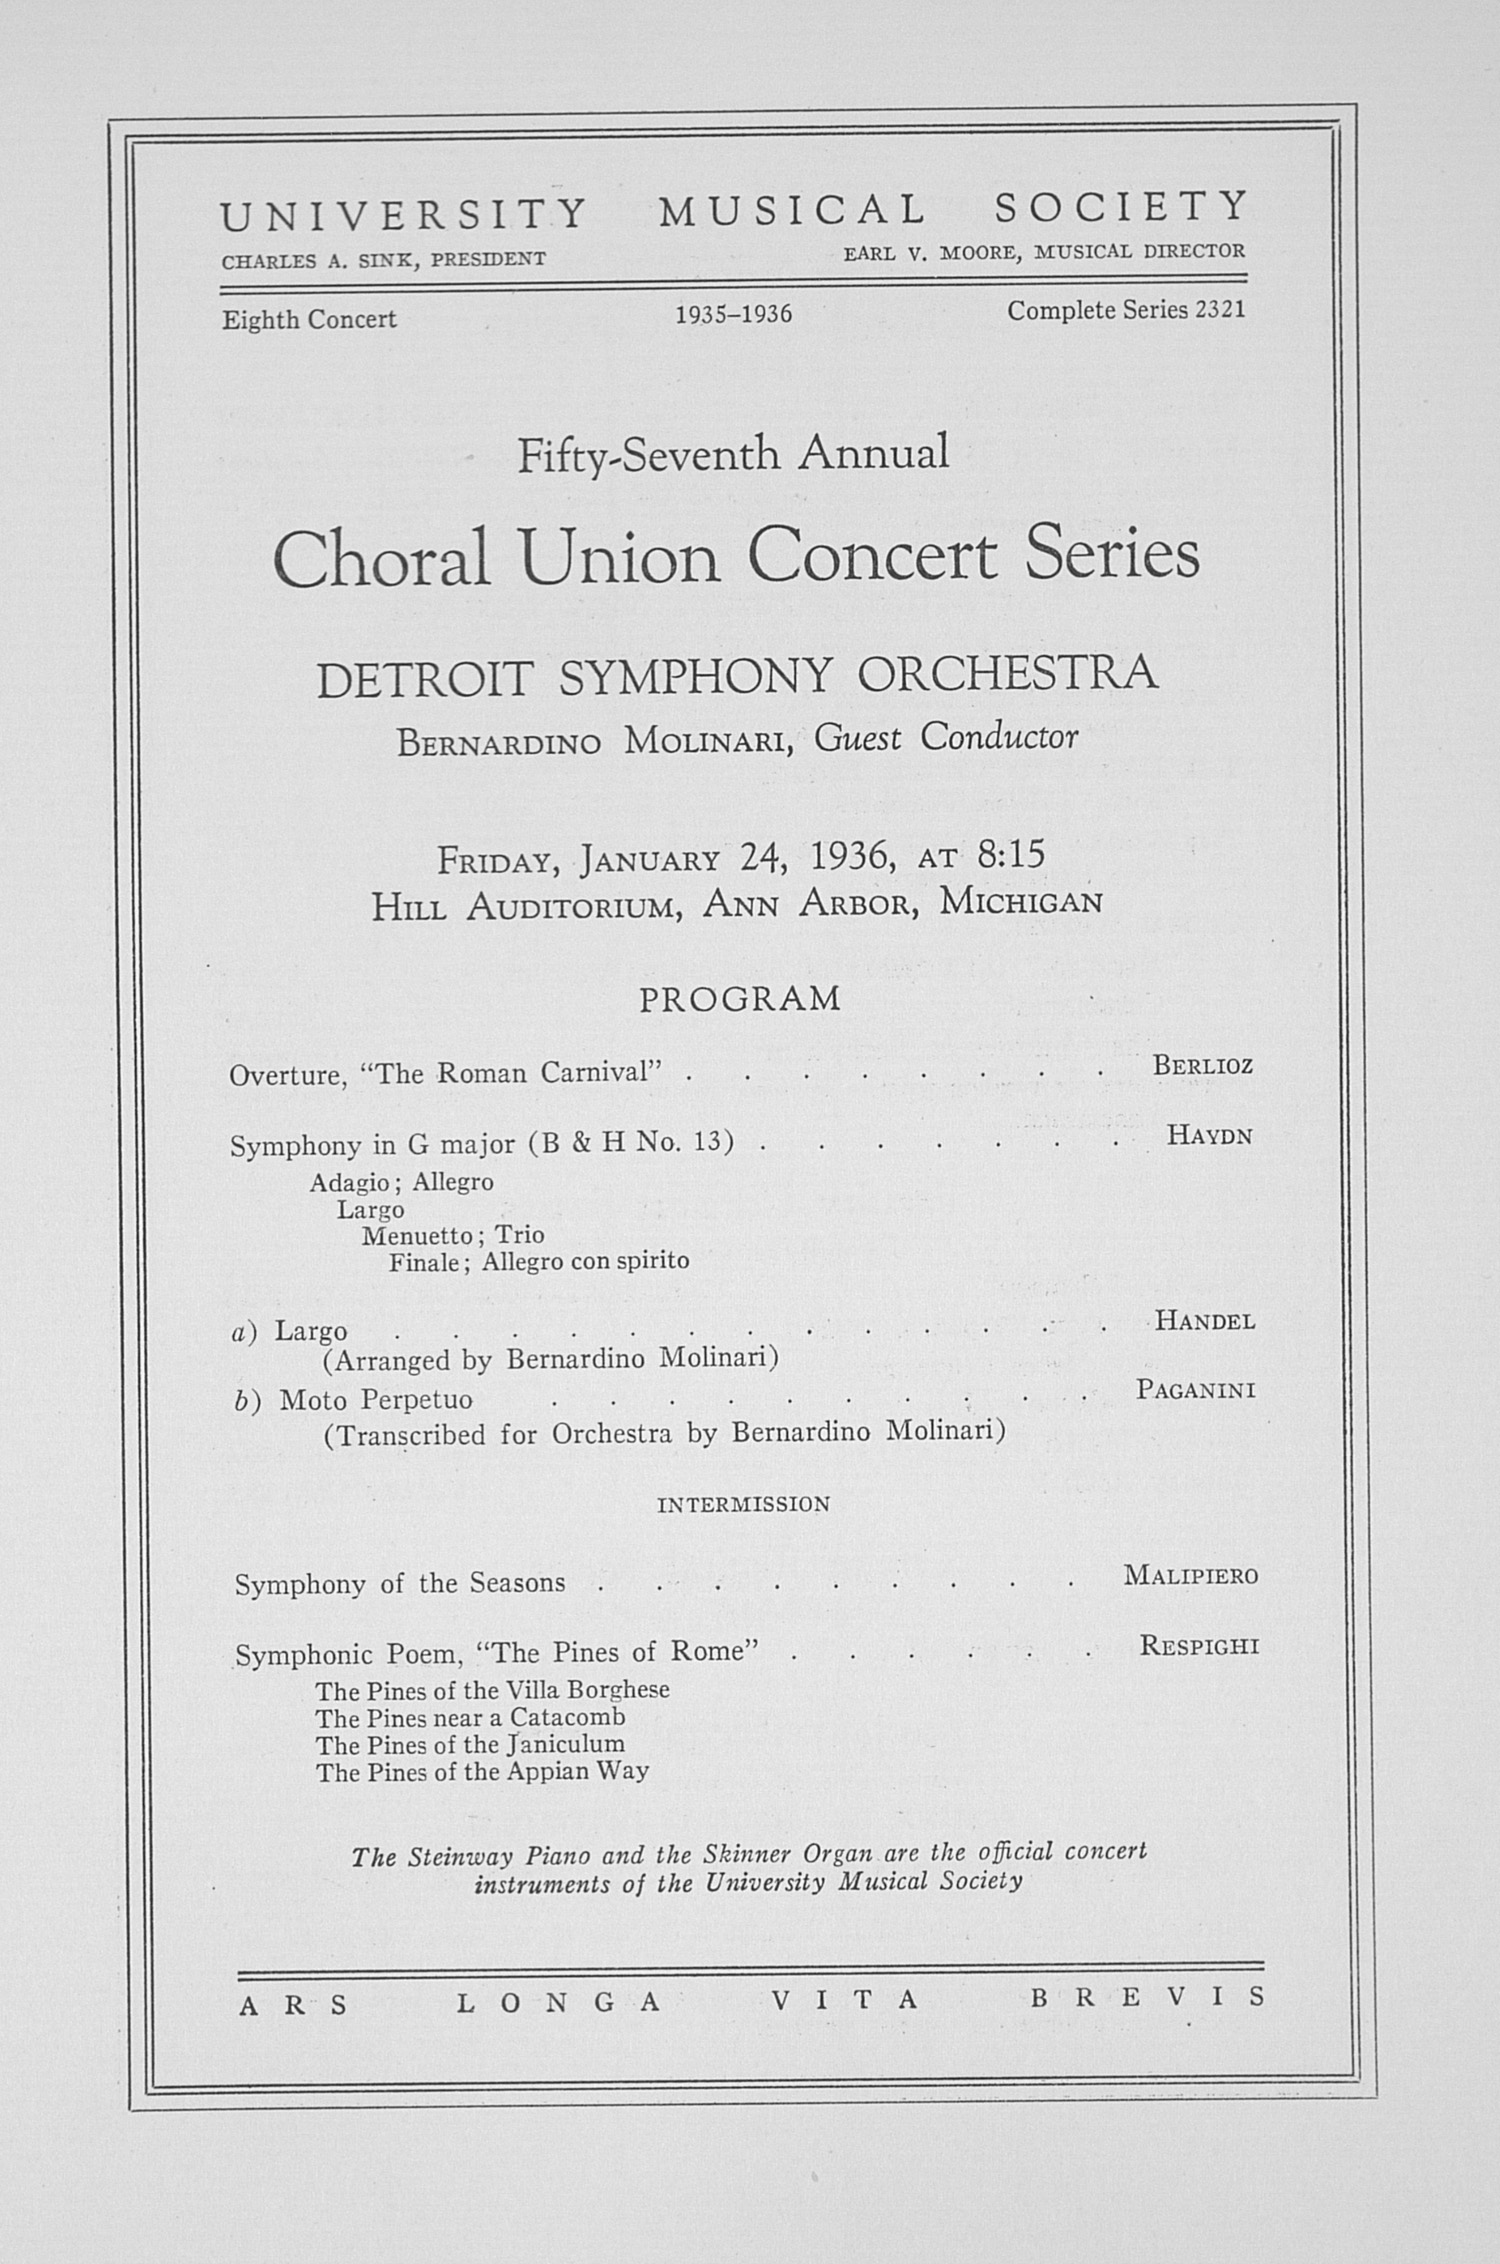 UMS Concert Program, January 24, 1936: Fifty-seventh Annual Choral Union Concert Series -- Detroit Symphony Orchestra image